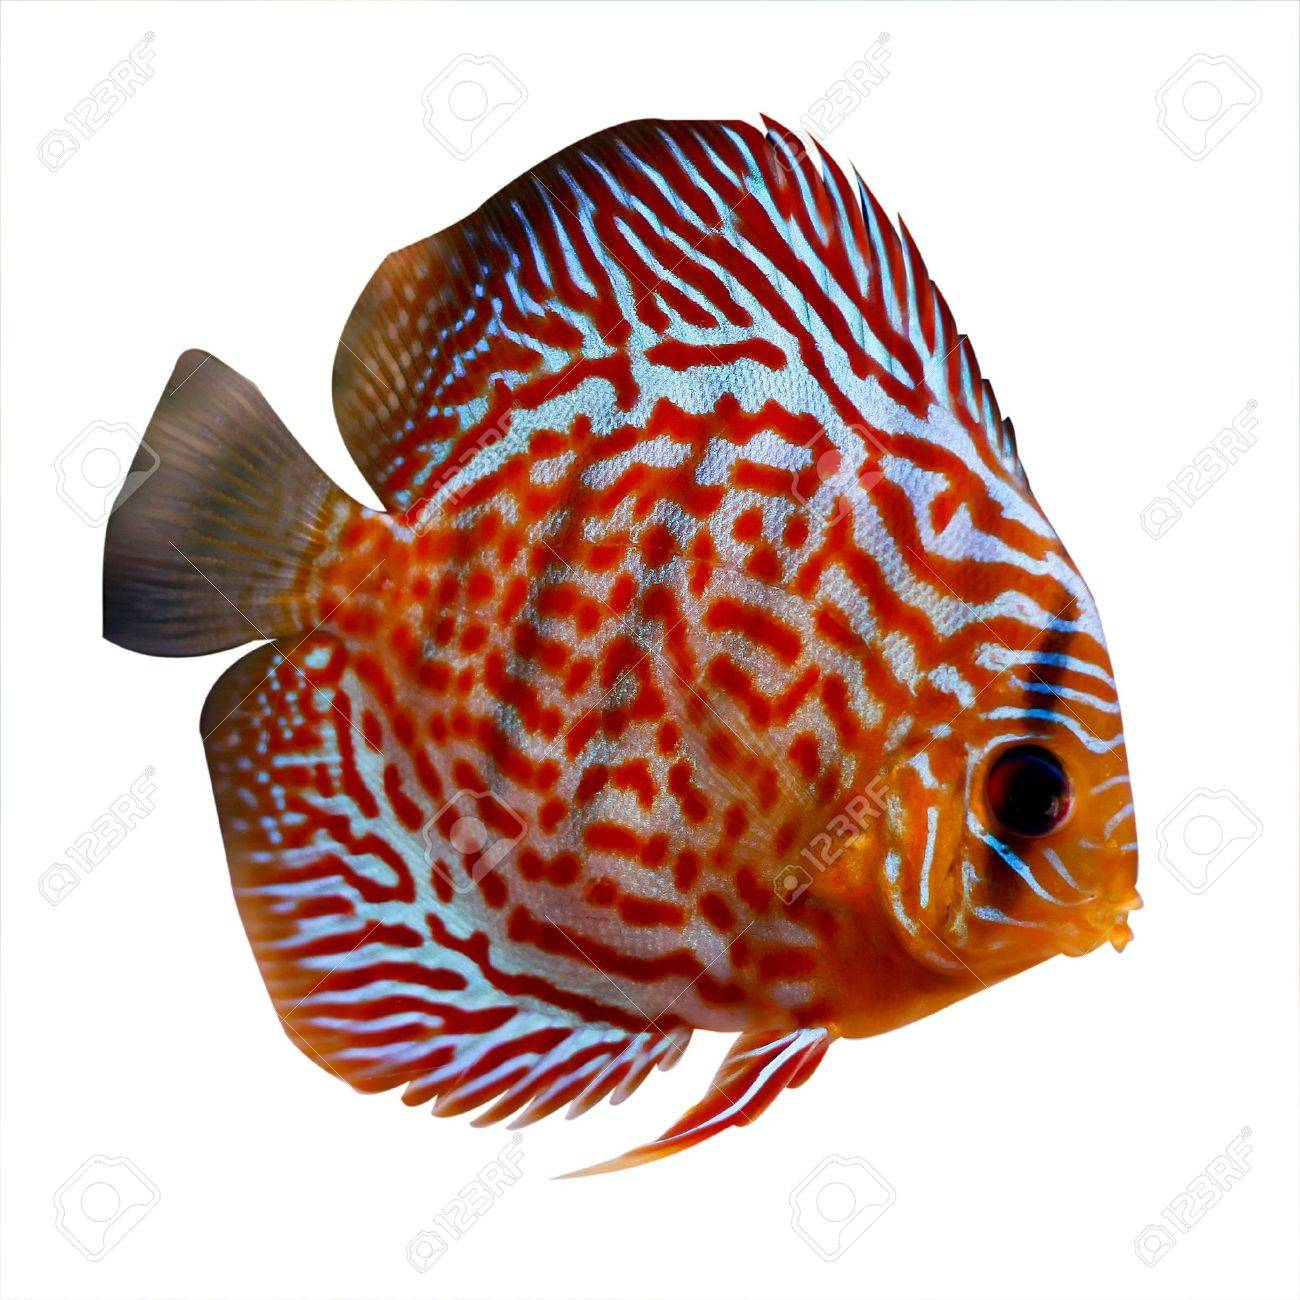 Colorful Tropical Symphysodon Discus Fish On White Background Stock ...